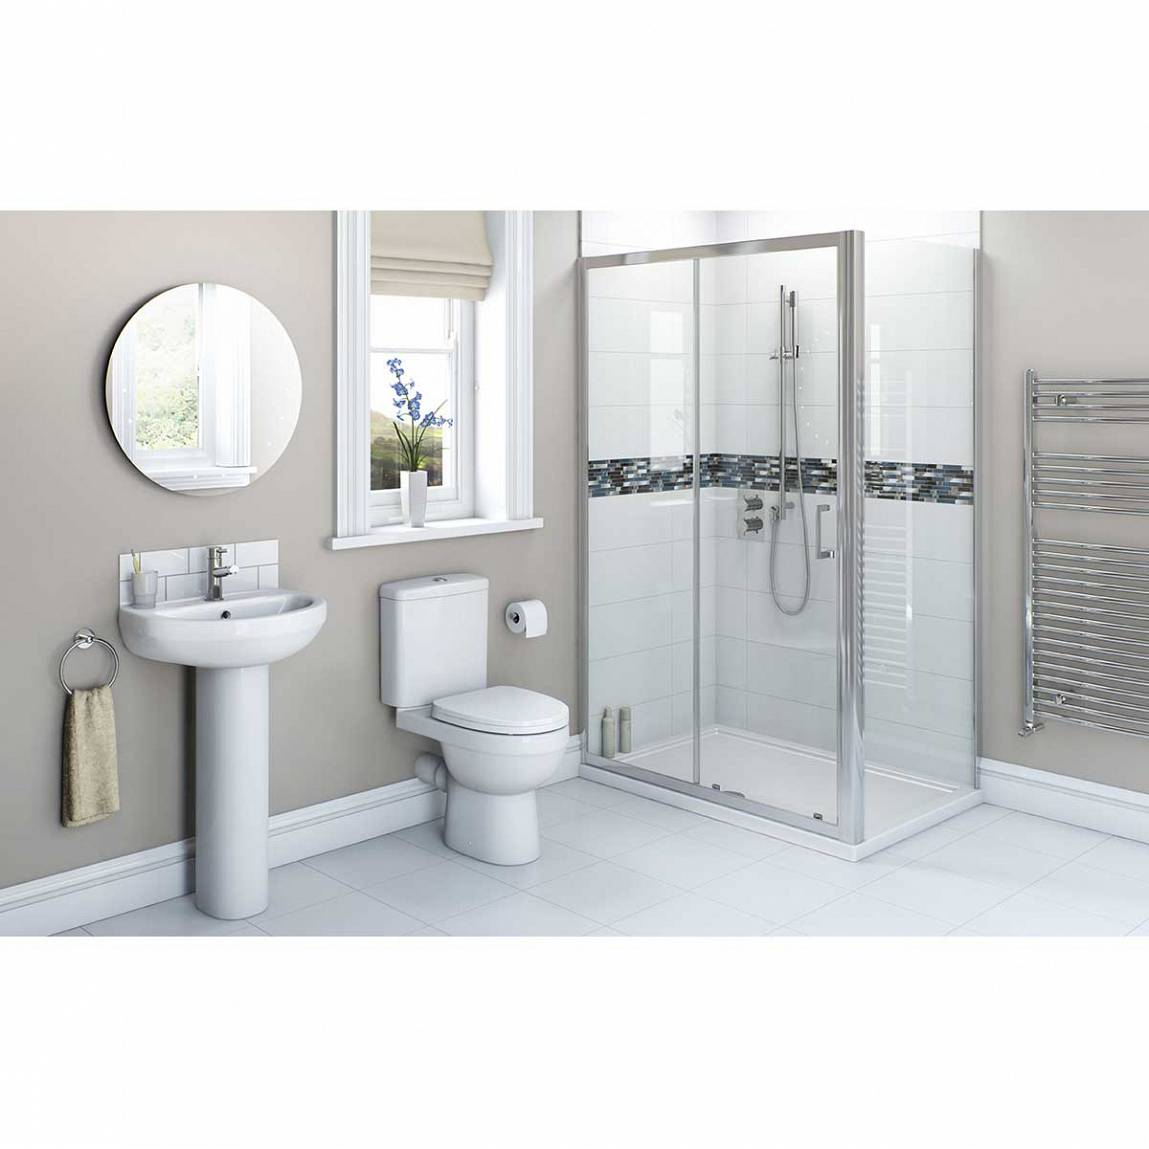 Image of Energy Bathroom set with 1100x900 Sliding Enclosure & Tray